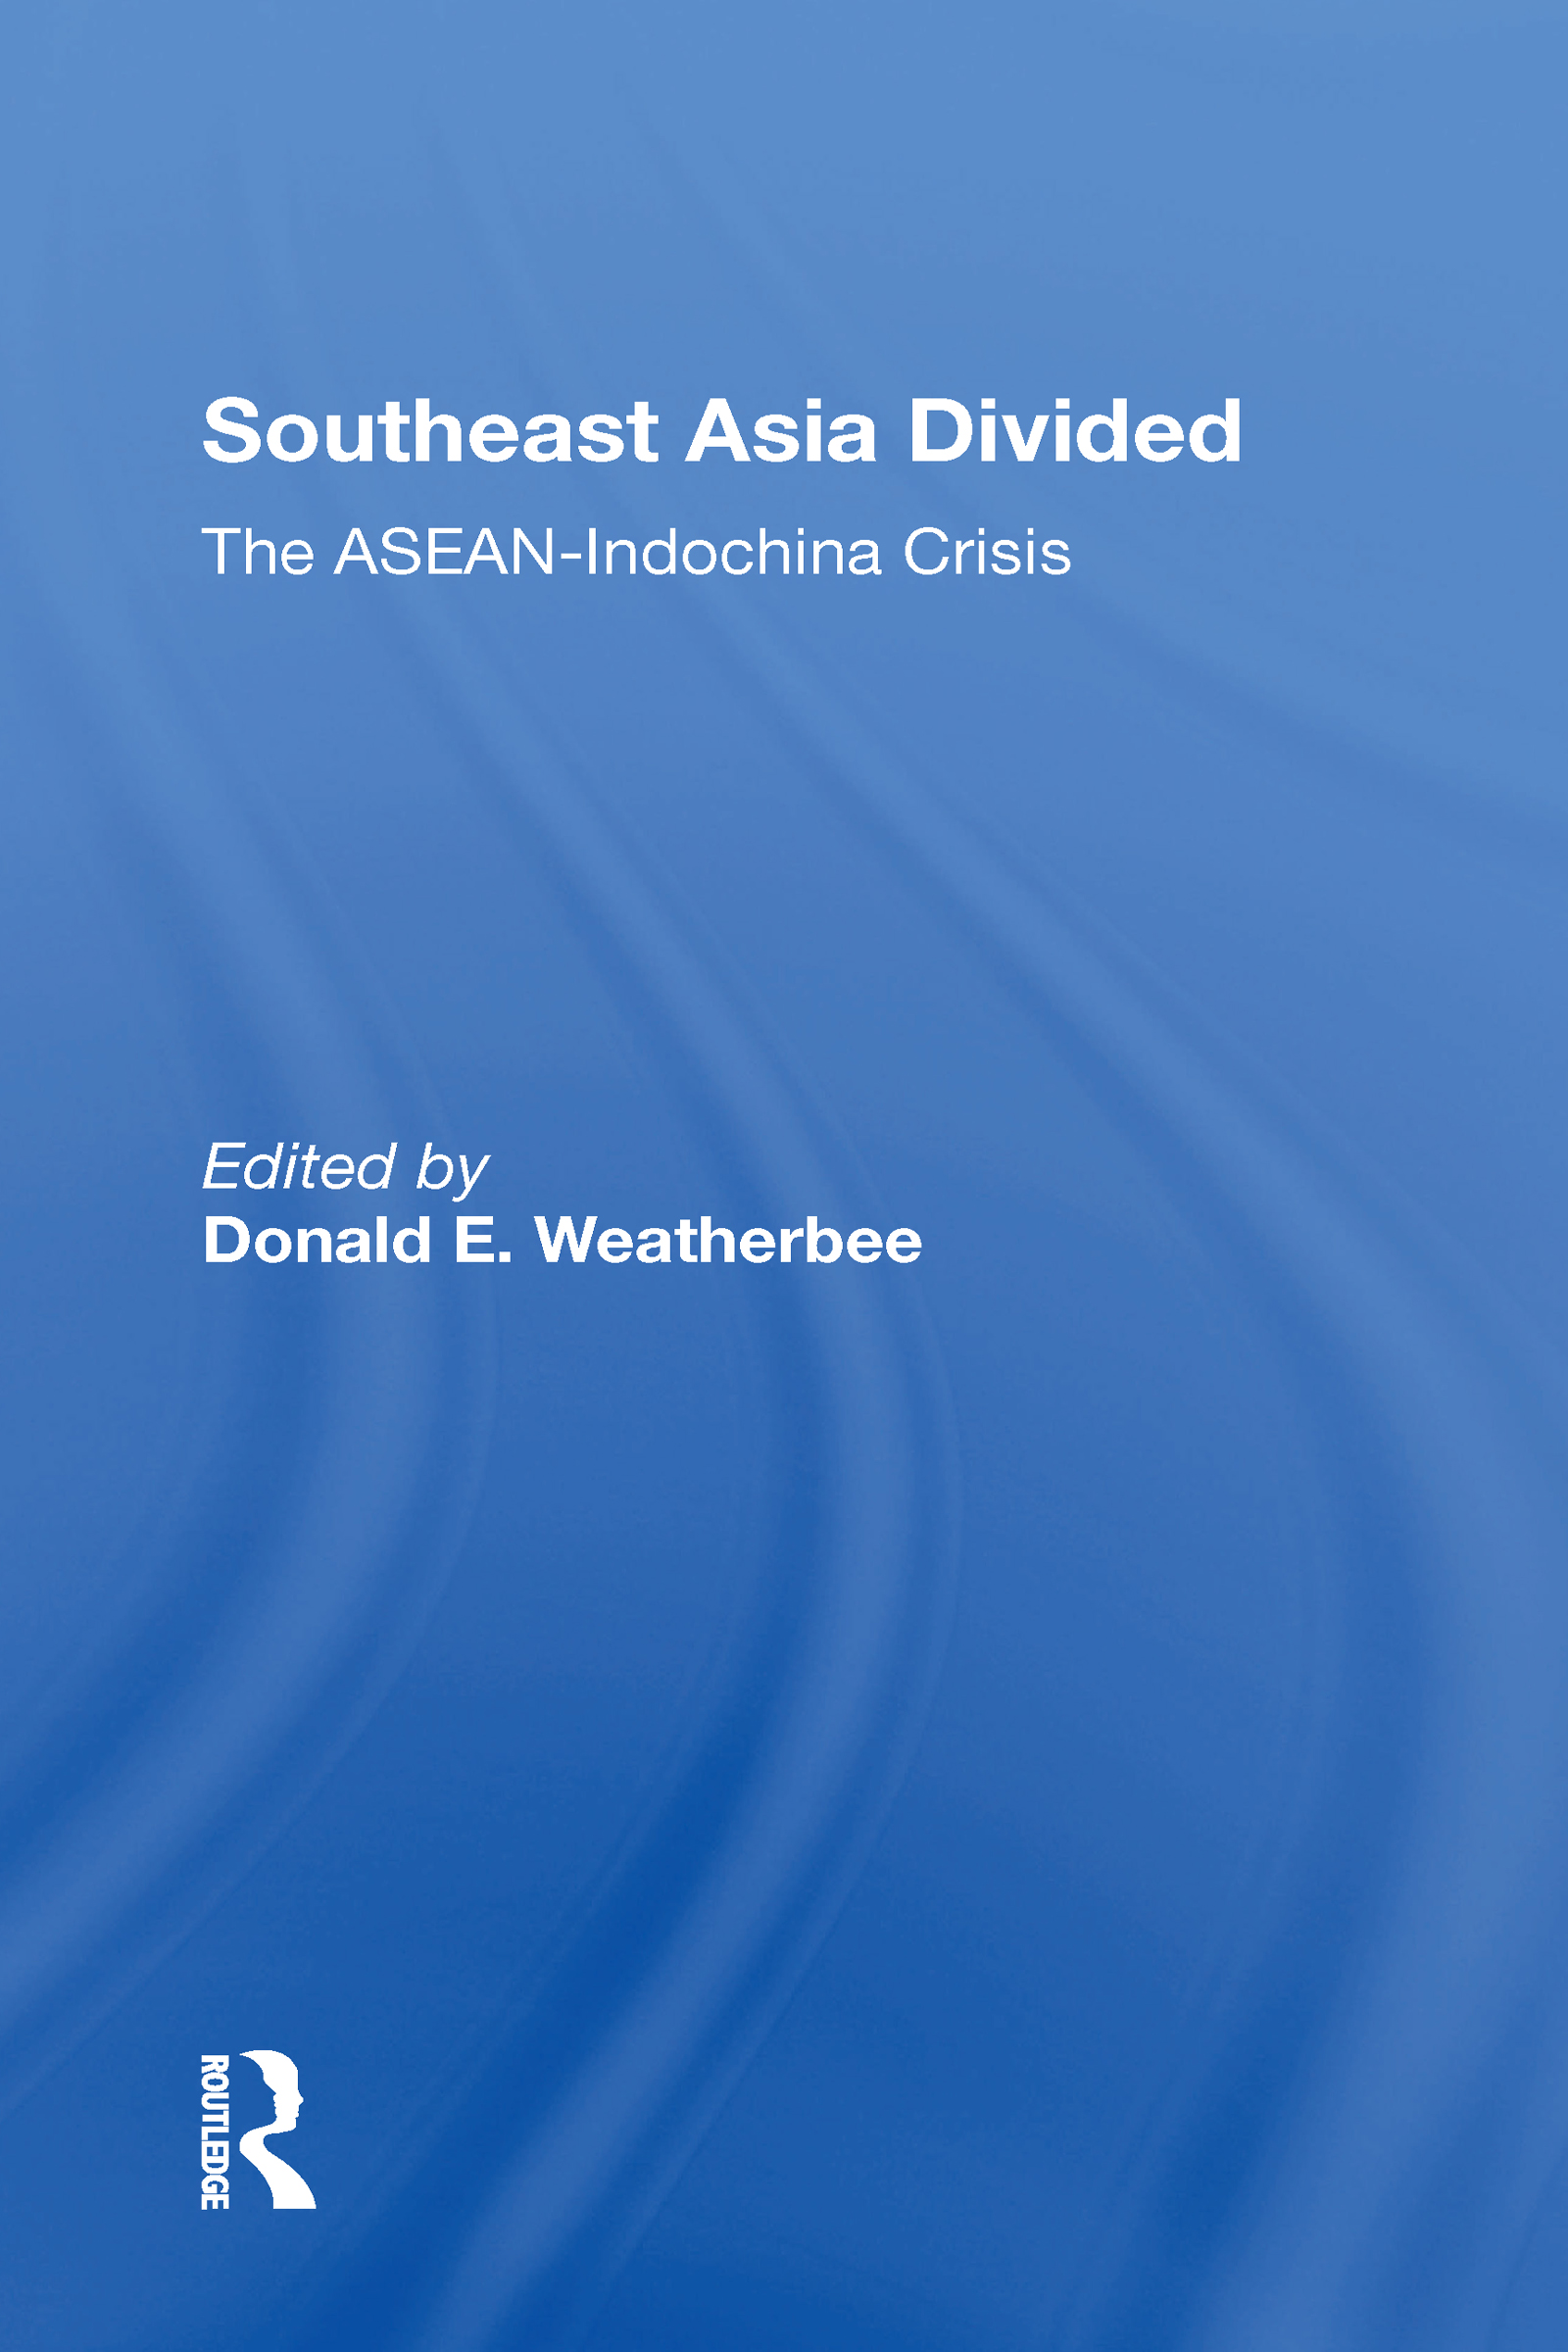 Southeast Asia Divided